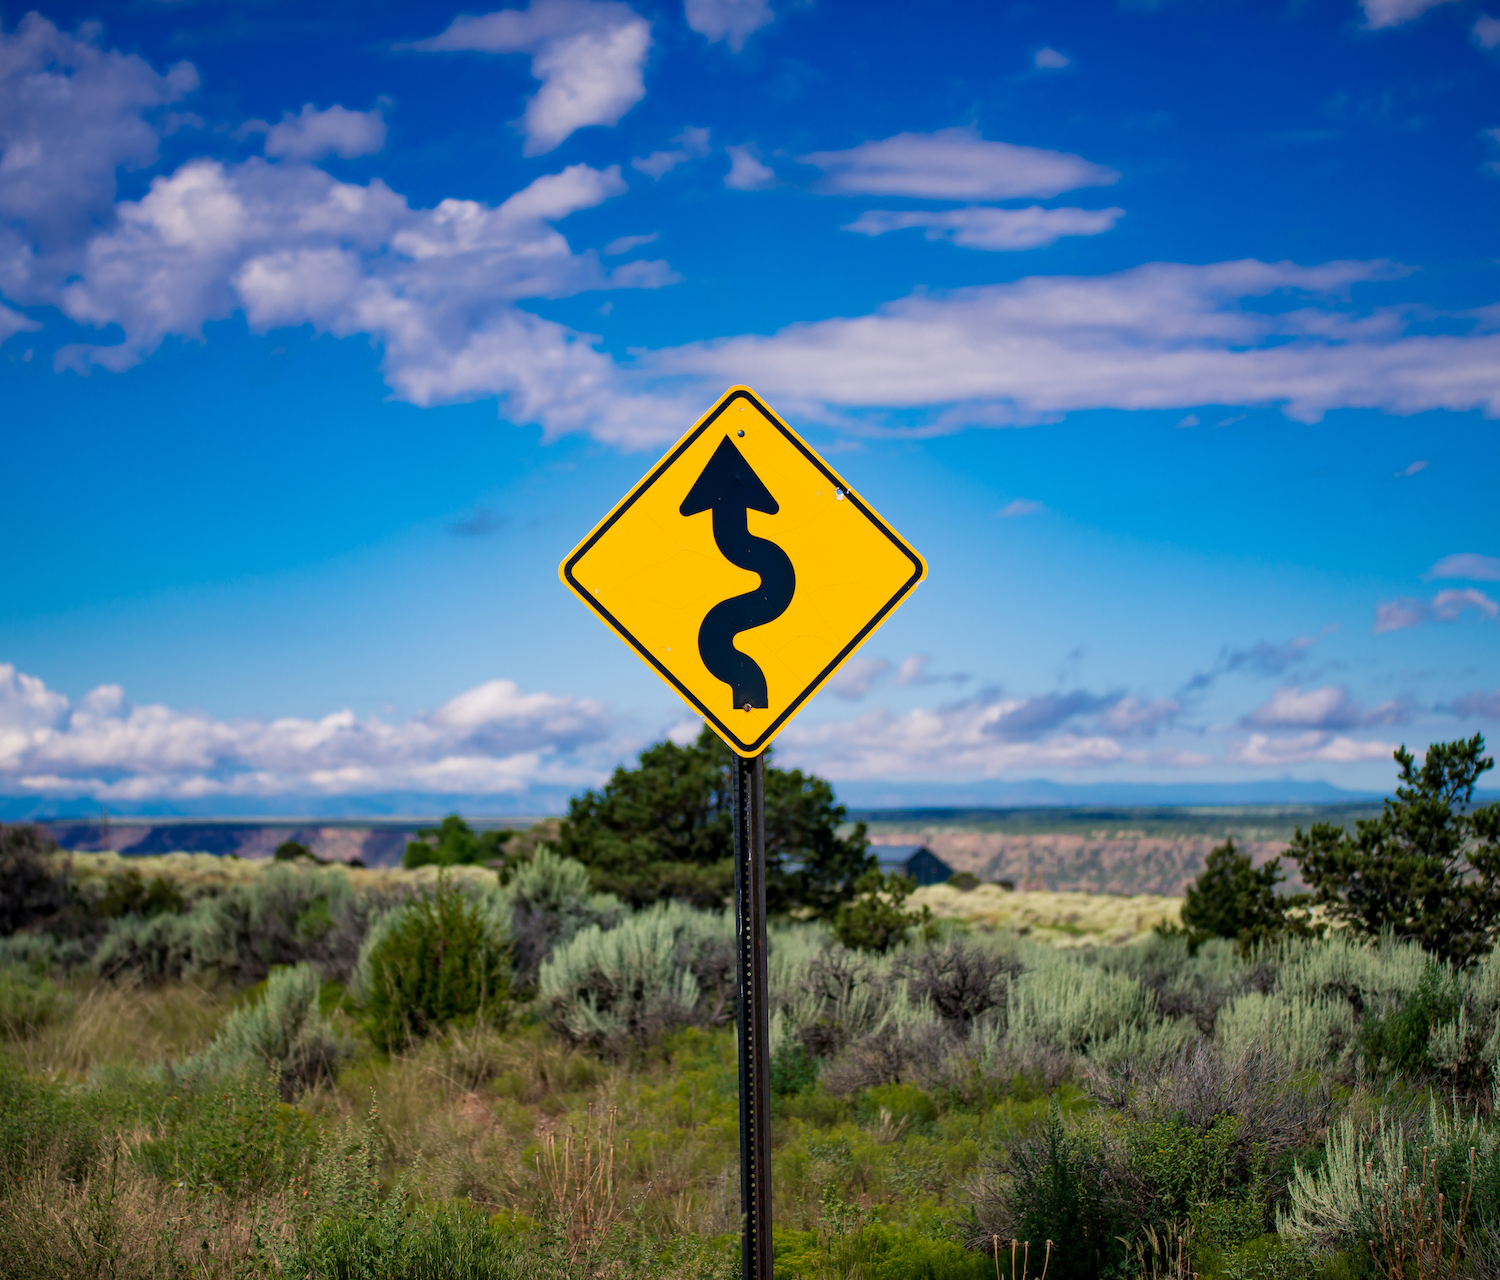 Road trip photography tips - curves in the road sign